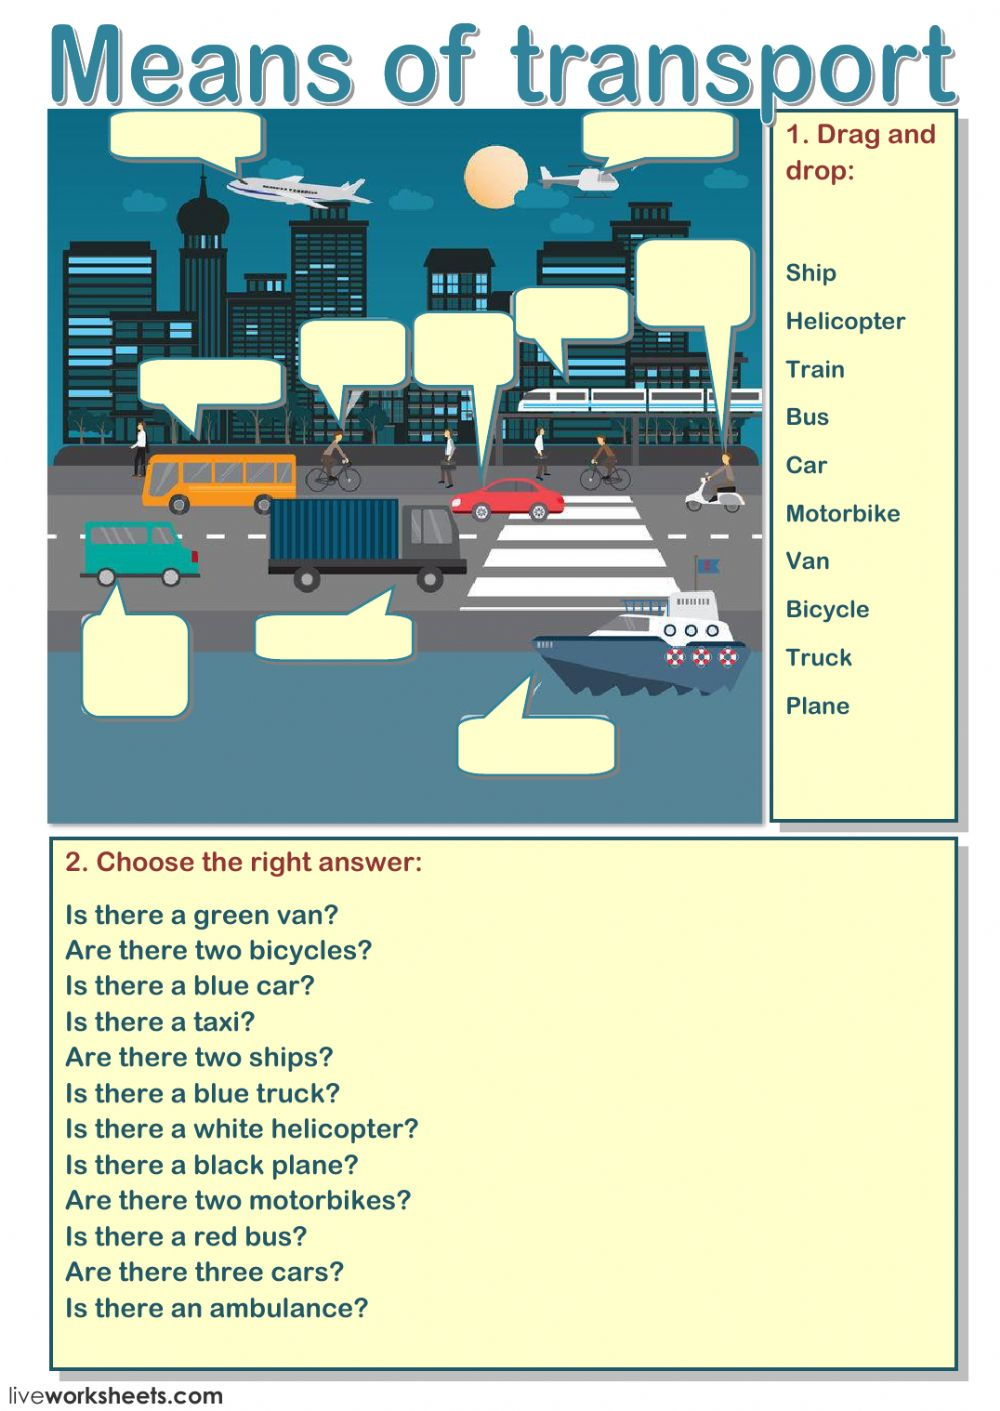 means of transport interactive worksheet